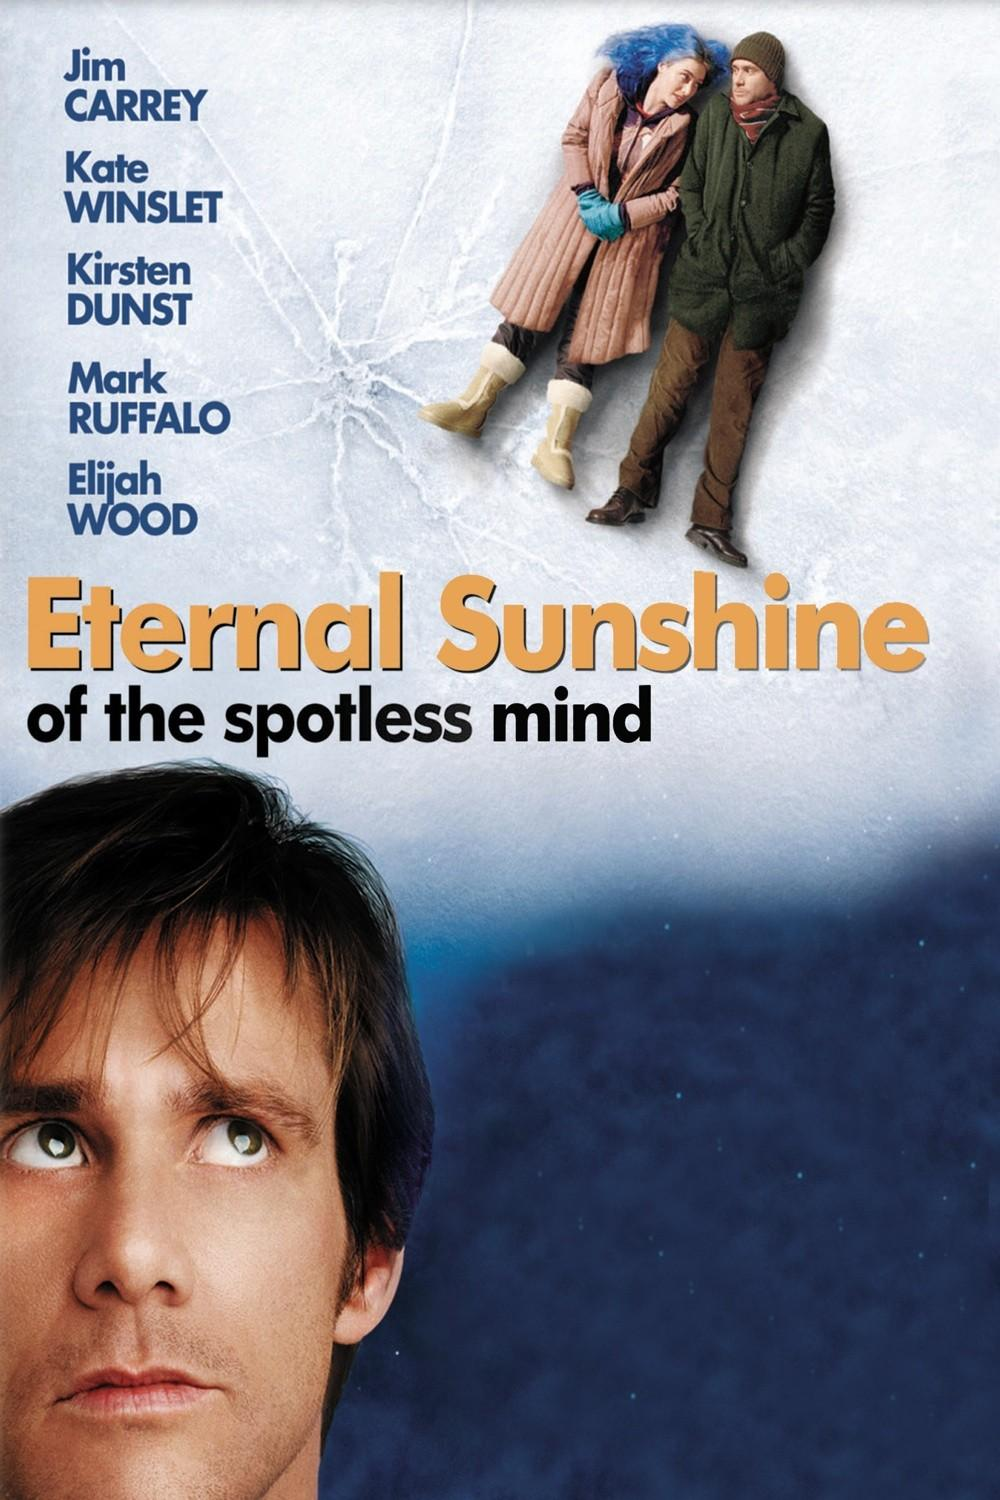 essay about eternal sunshine of the spotless mind I was reminded of the passive ones while watching eternal sunshine of the spotless mind  part of a video essay series  eternal sunshine is a.